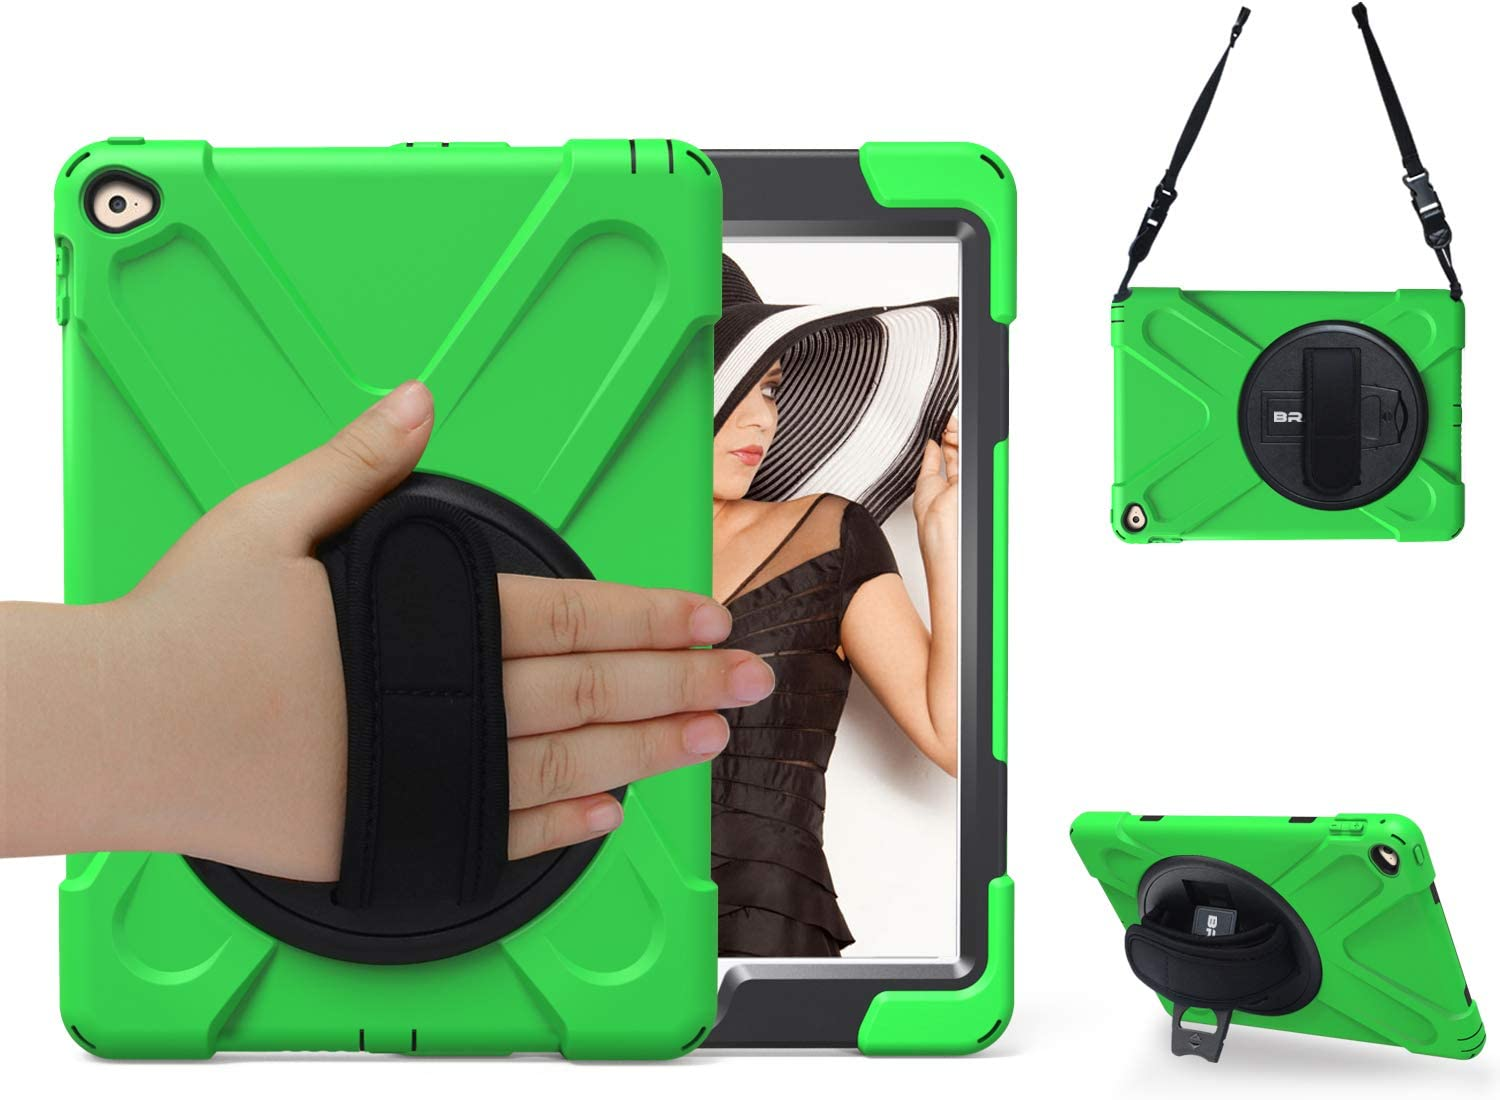 BRAECN iPad Air 2 Case for Apple iPad Air 2 Case [2nd Generation] 2014 Release Full-Body Rugged Hybrid Protective Case Cover with Kickstand/Hand Strap/Adjustable Shoulder Strap (Green)